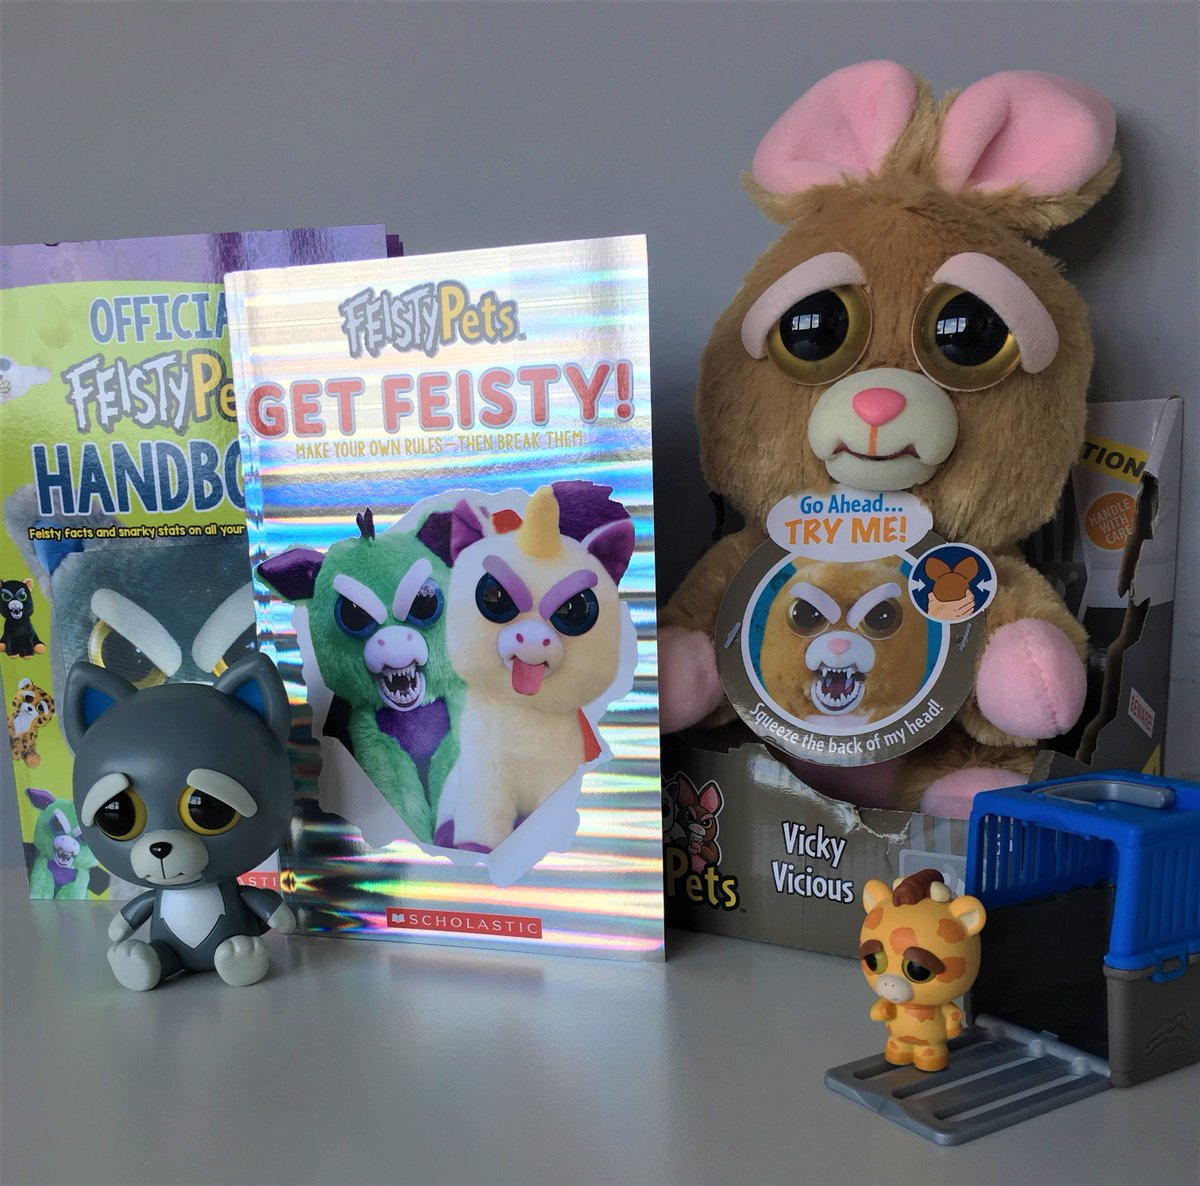 These pets look cute and cuddly... until you get your paws on them! RT for the chance to win a Feisty Pets bundle - winner receives a large Feisty Pet, our Official Feisty Pets Handbook and Get Feisty! 5 runners up receive a Feisty Pets minifigure, Mini Misfit and the books!